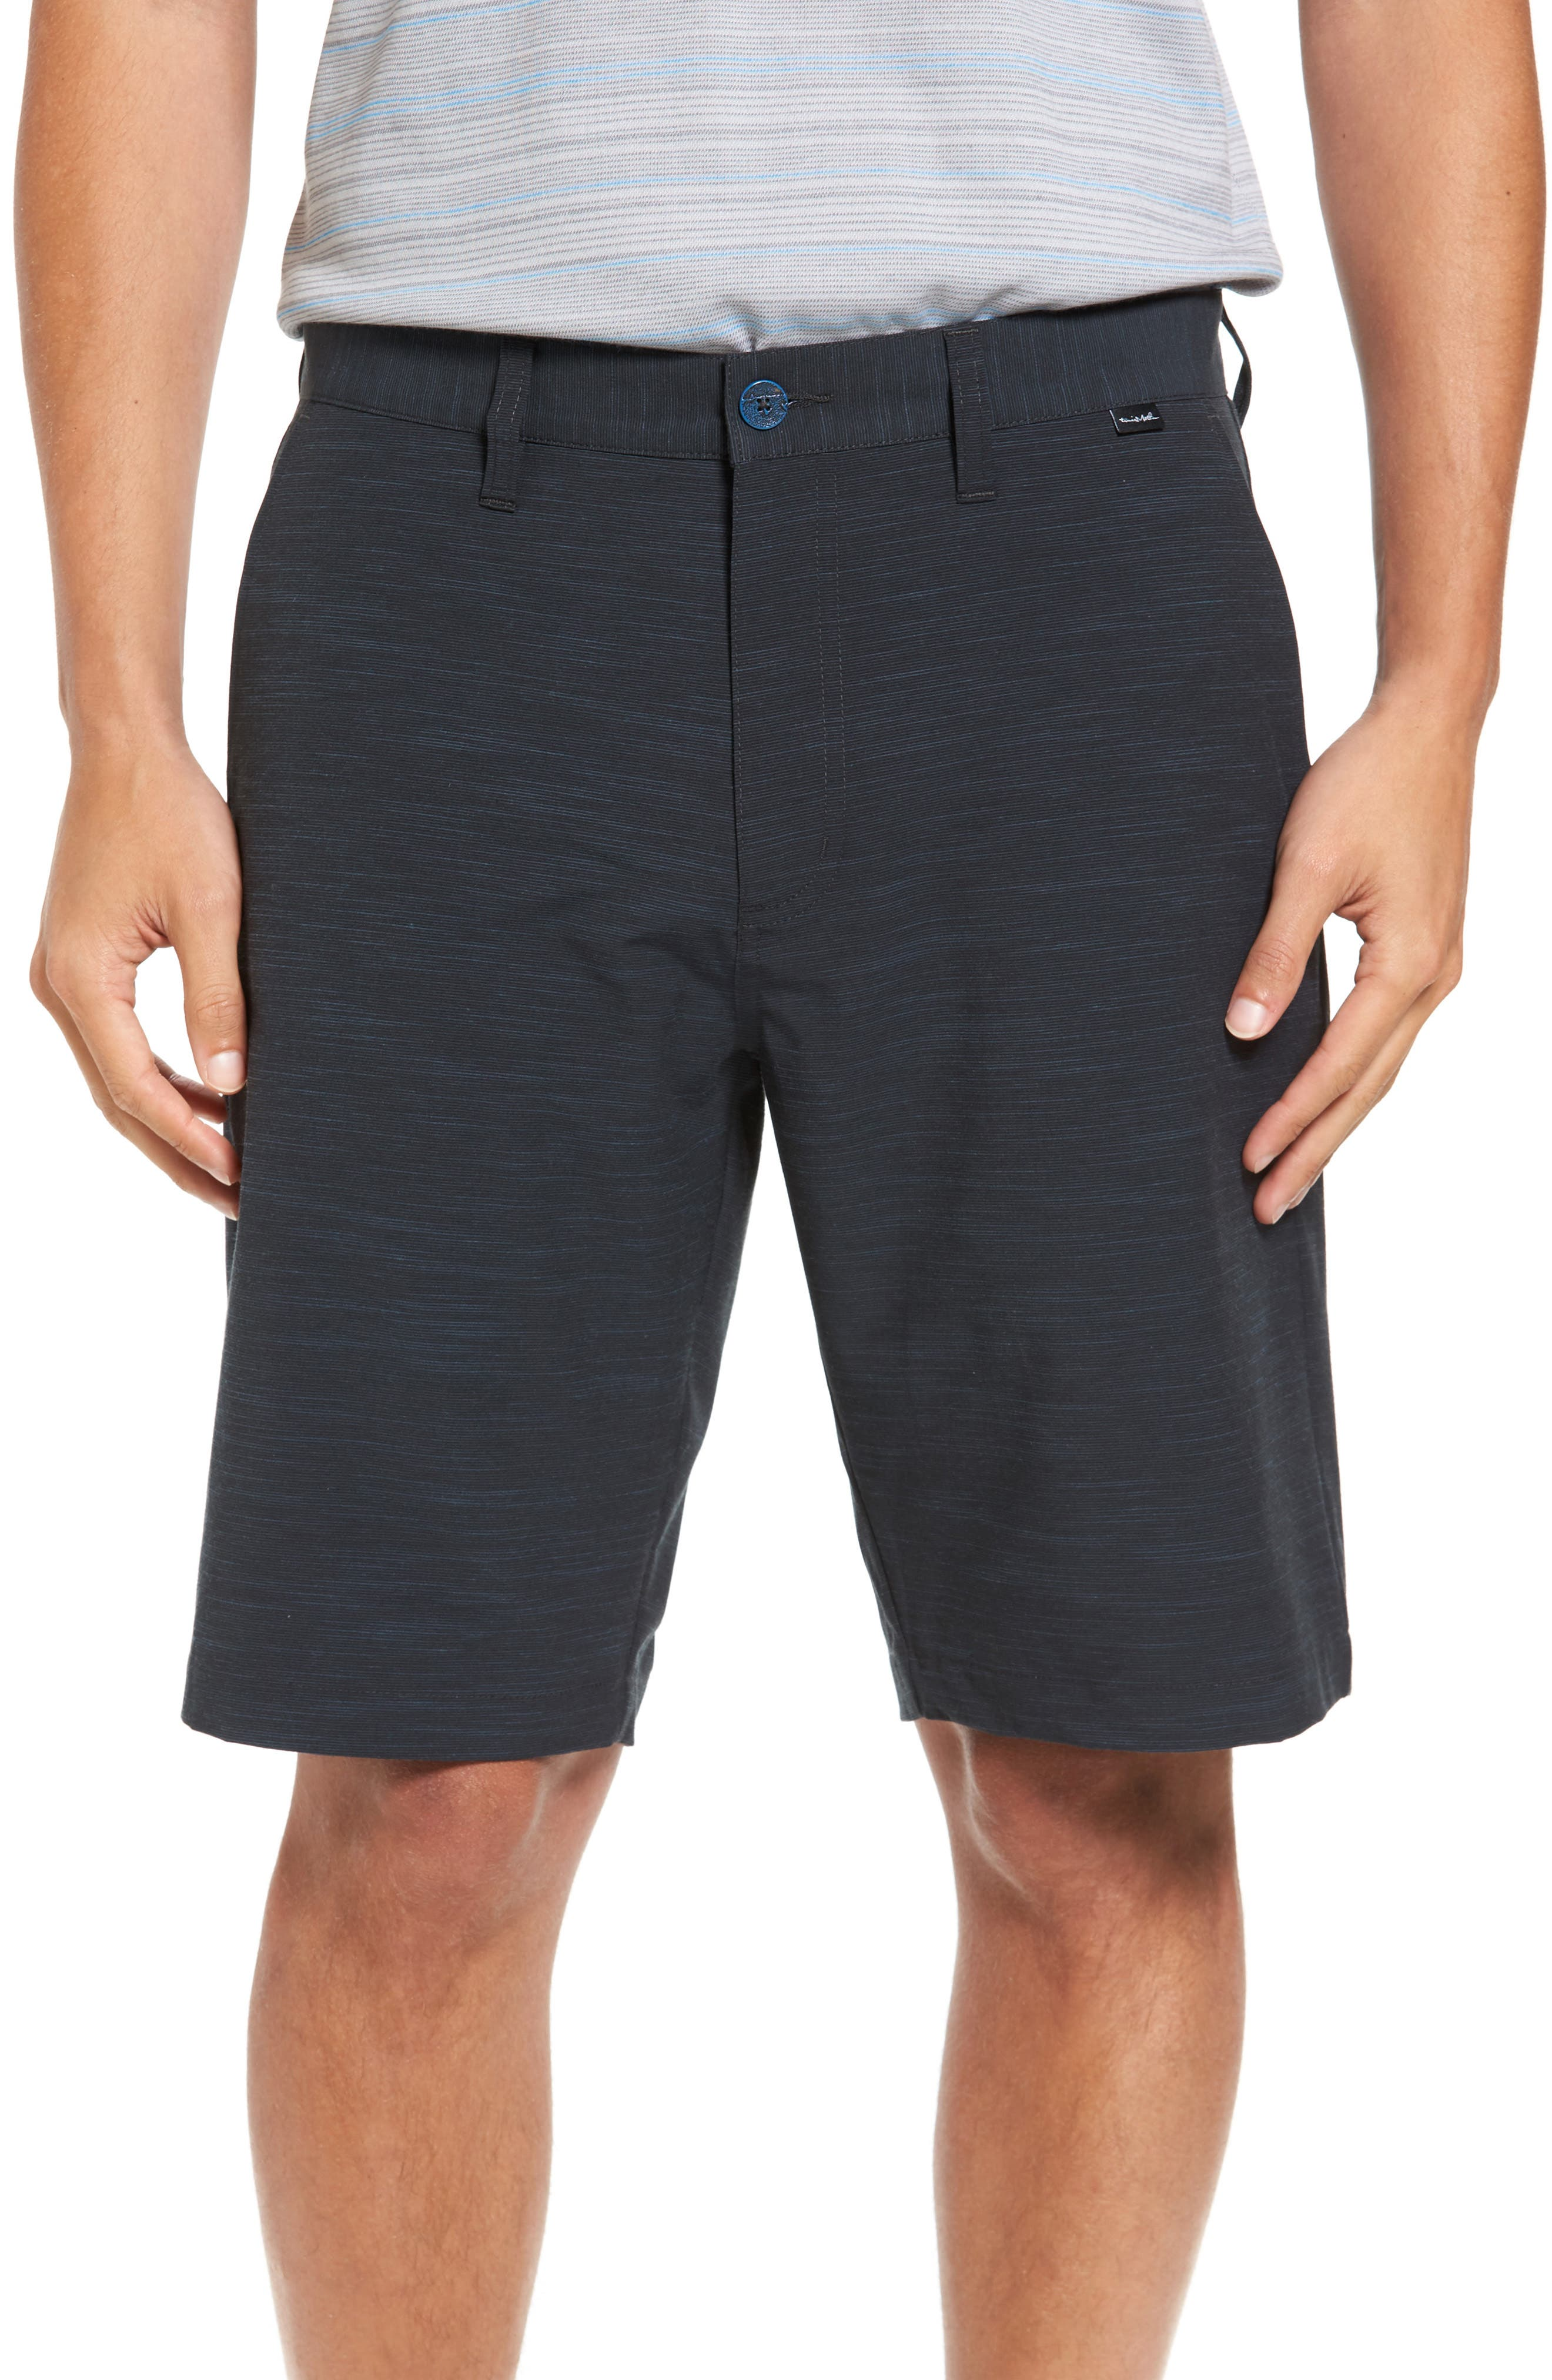 Main Image - Travis Mathew Caps Golf Shorts